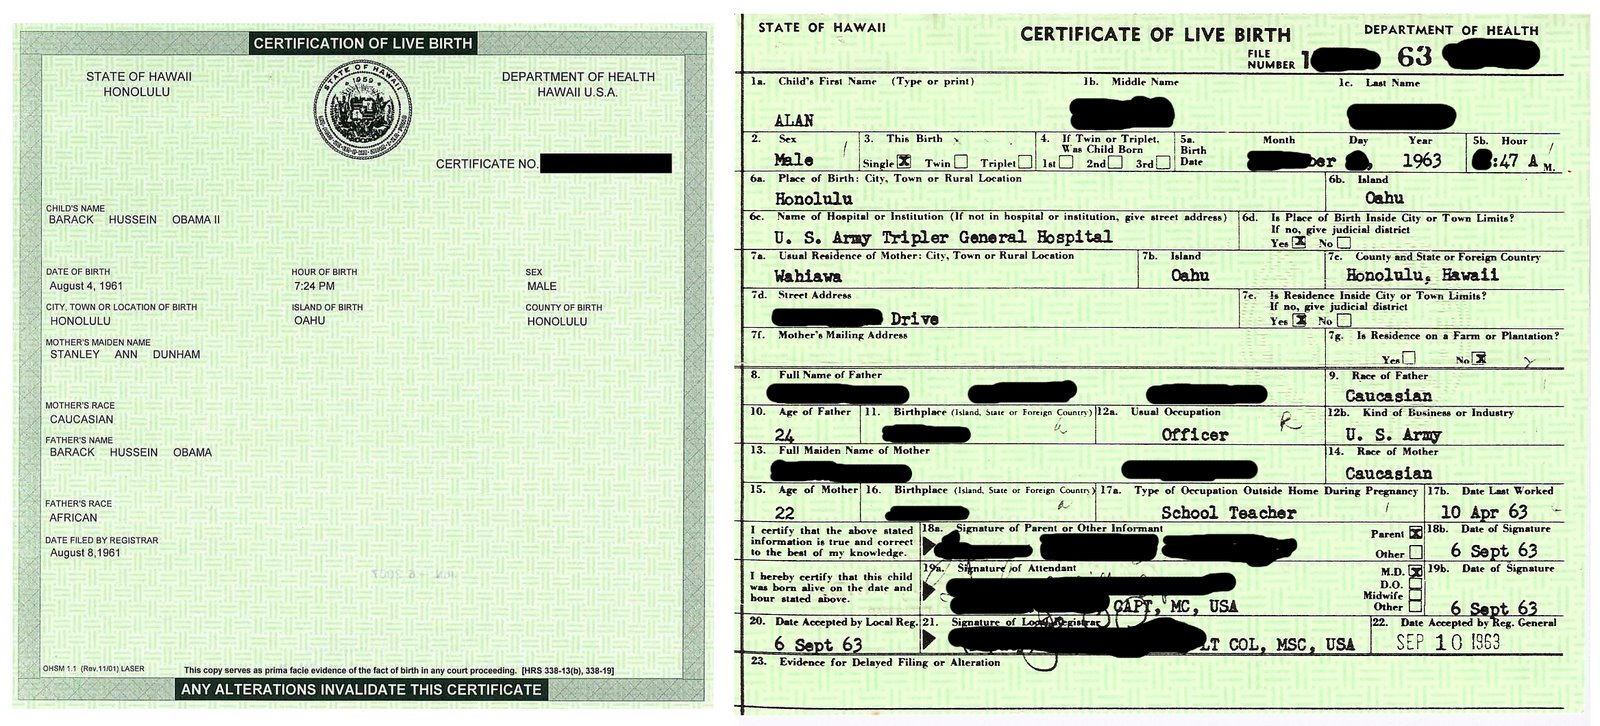 New Application For Birth Certificate Replacement